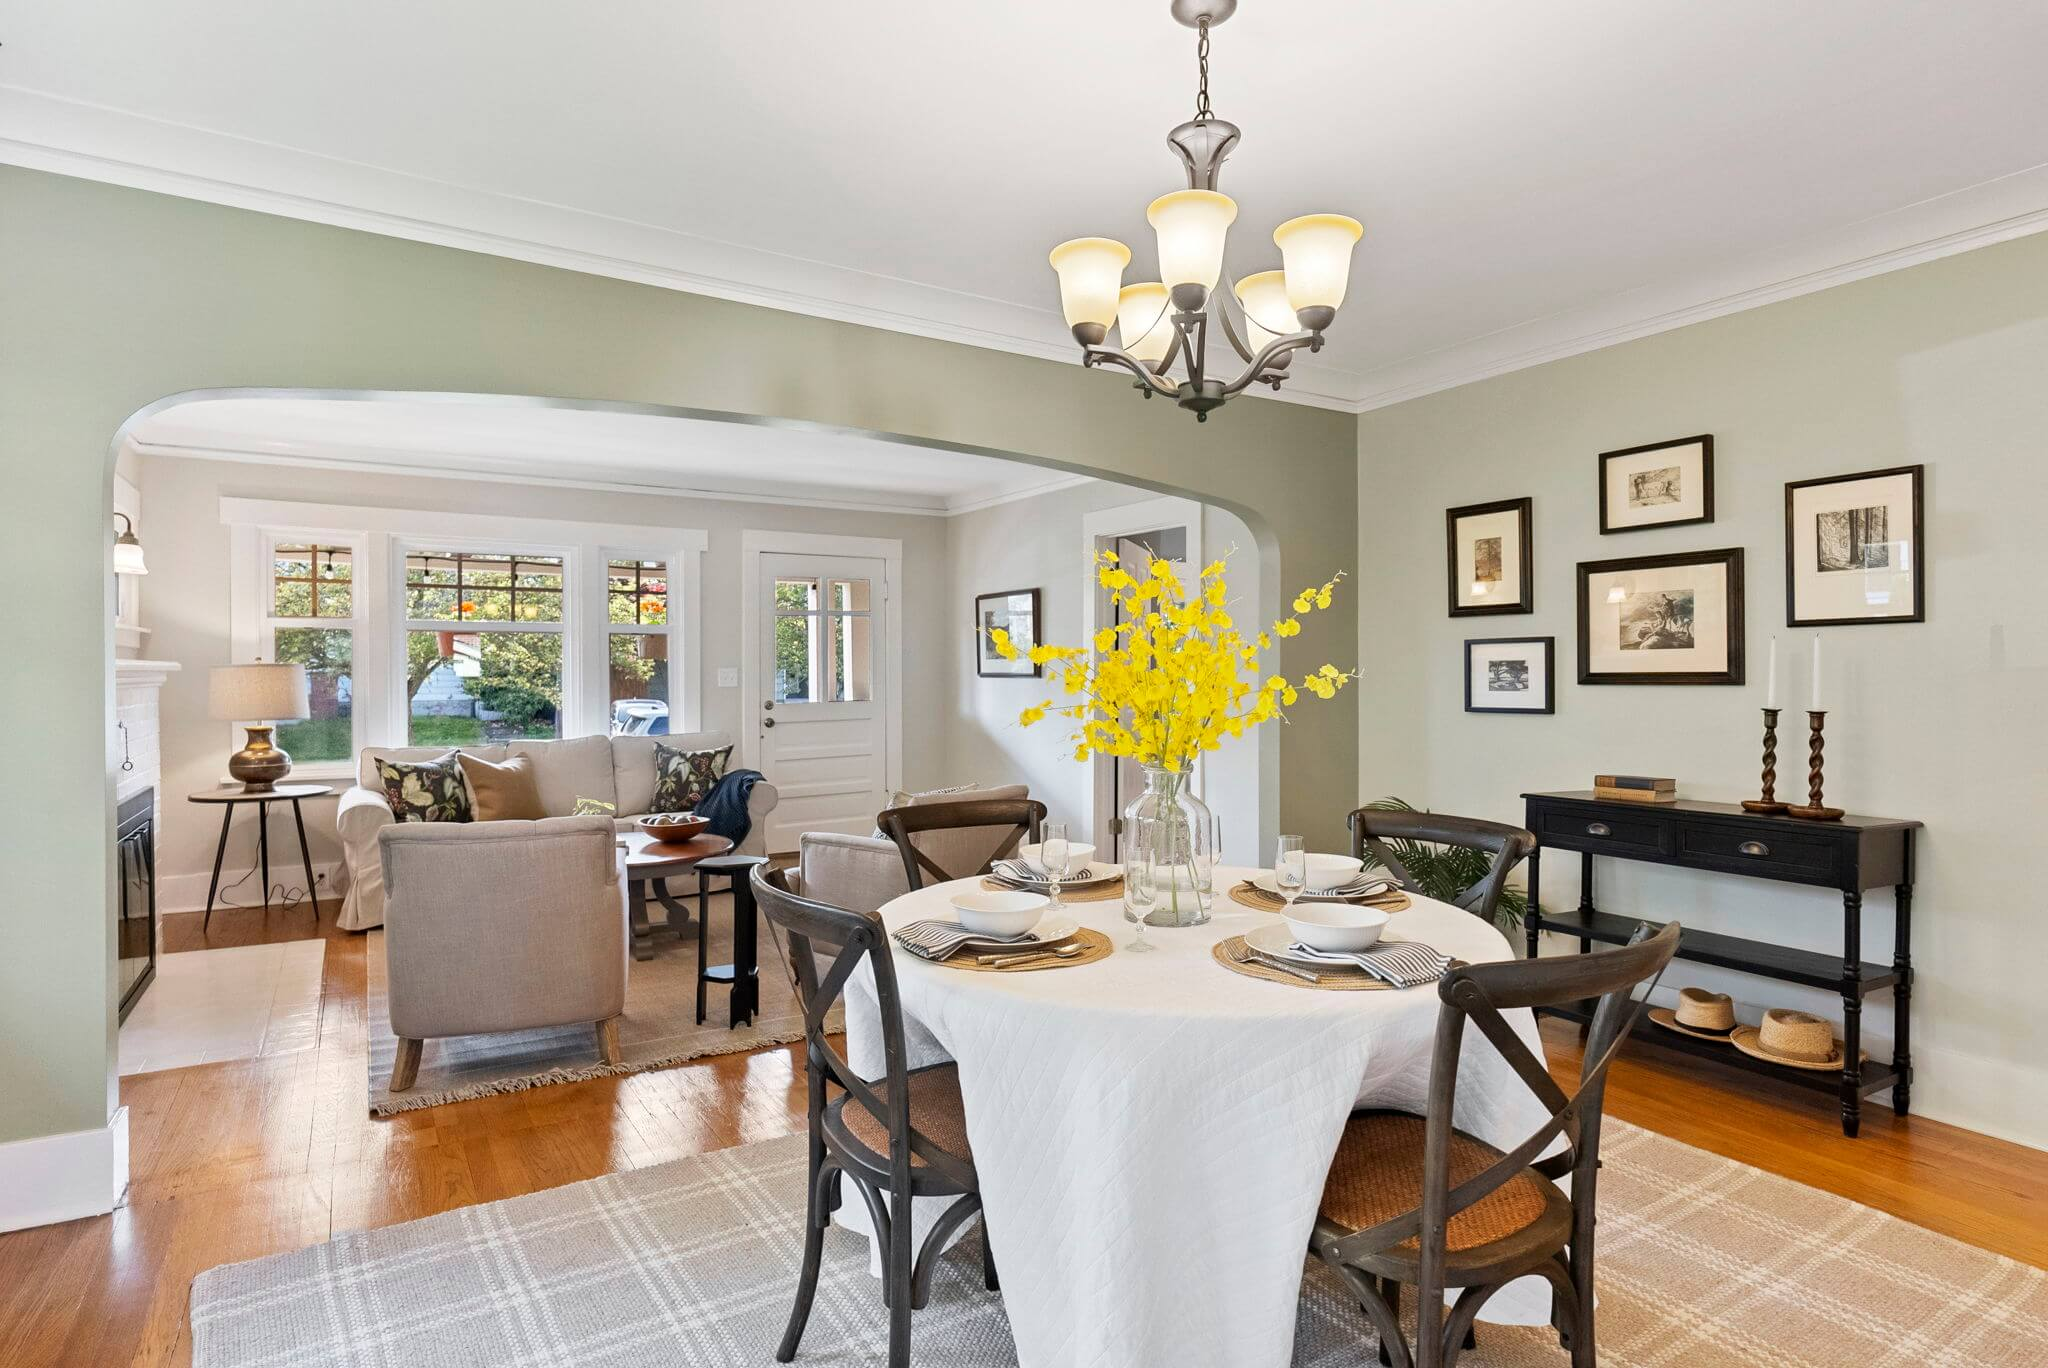 Spacious dining room is ideal for entertaining